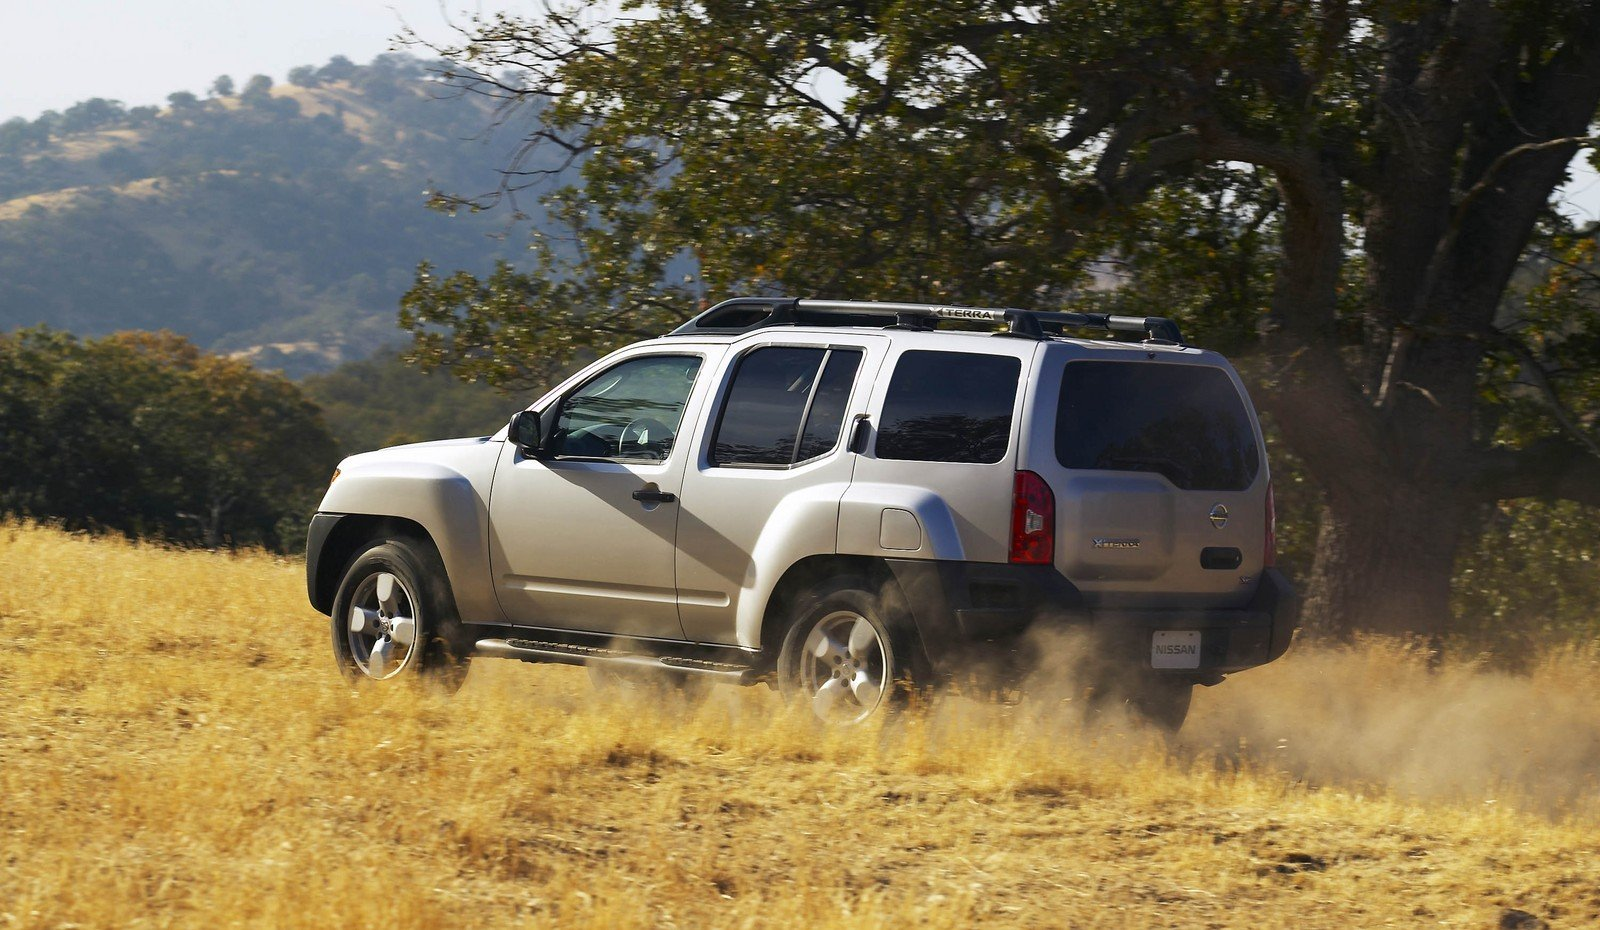 2006 nissan xterra picture 41206 car review top speed. Black Bedroom Furniture Sets. Home Design Ideas